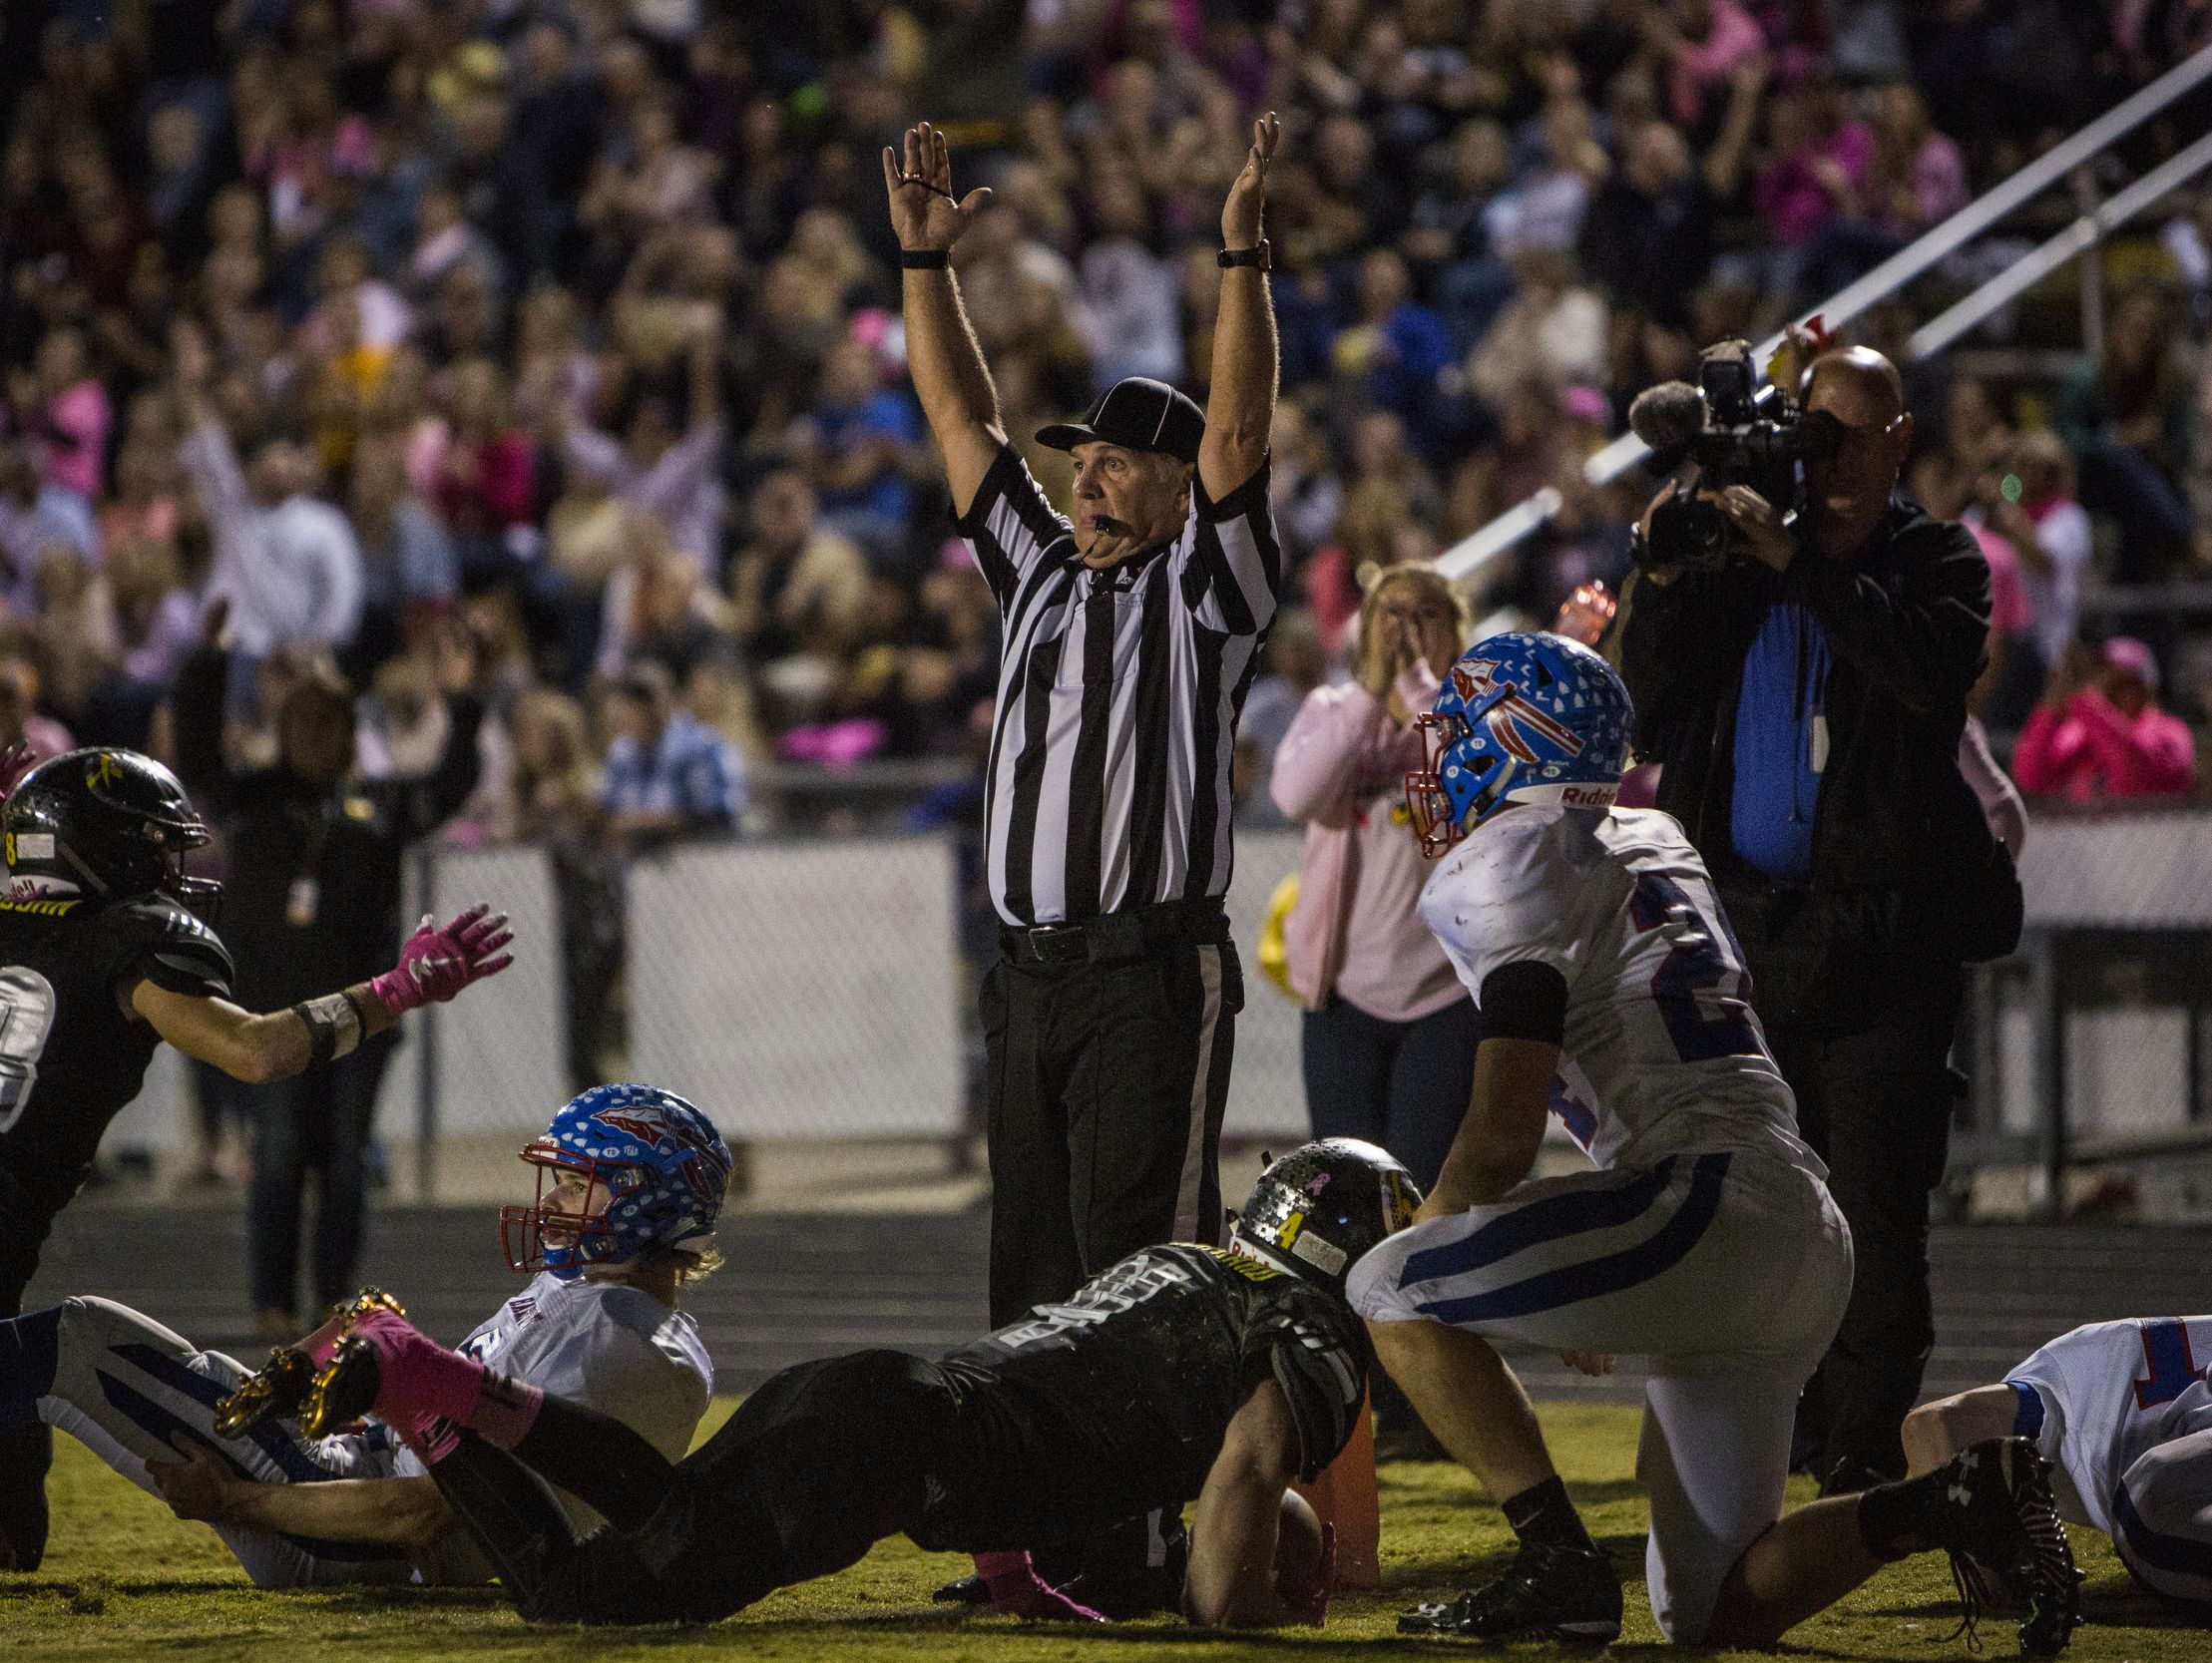 Referees single a touchdown late in the second quarter after Fairview High School's _ dives into the end zone.